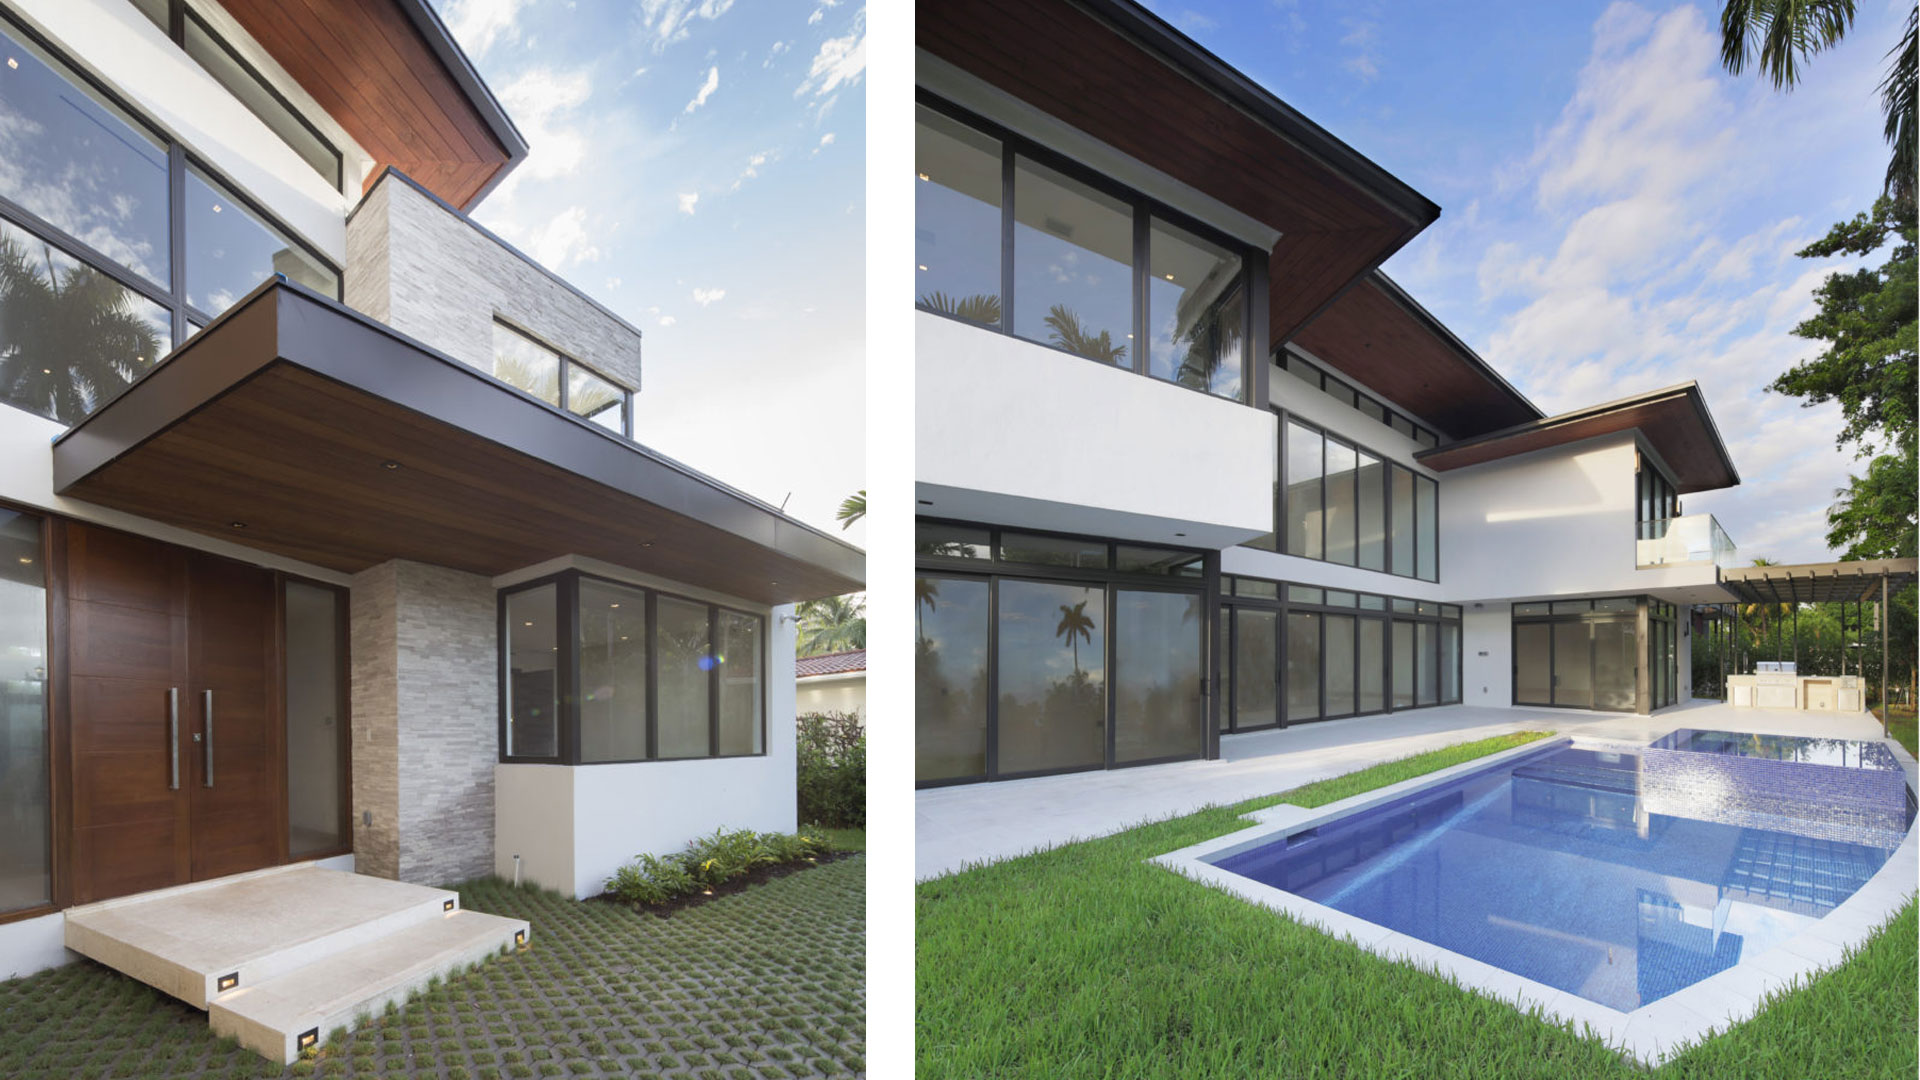 Bal Harbour Tropical Residence Modern High-end Construction pavers concrete ipe wood facade stone natural eyebrow balcony glass railing